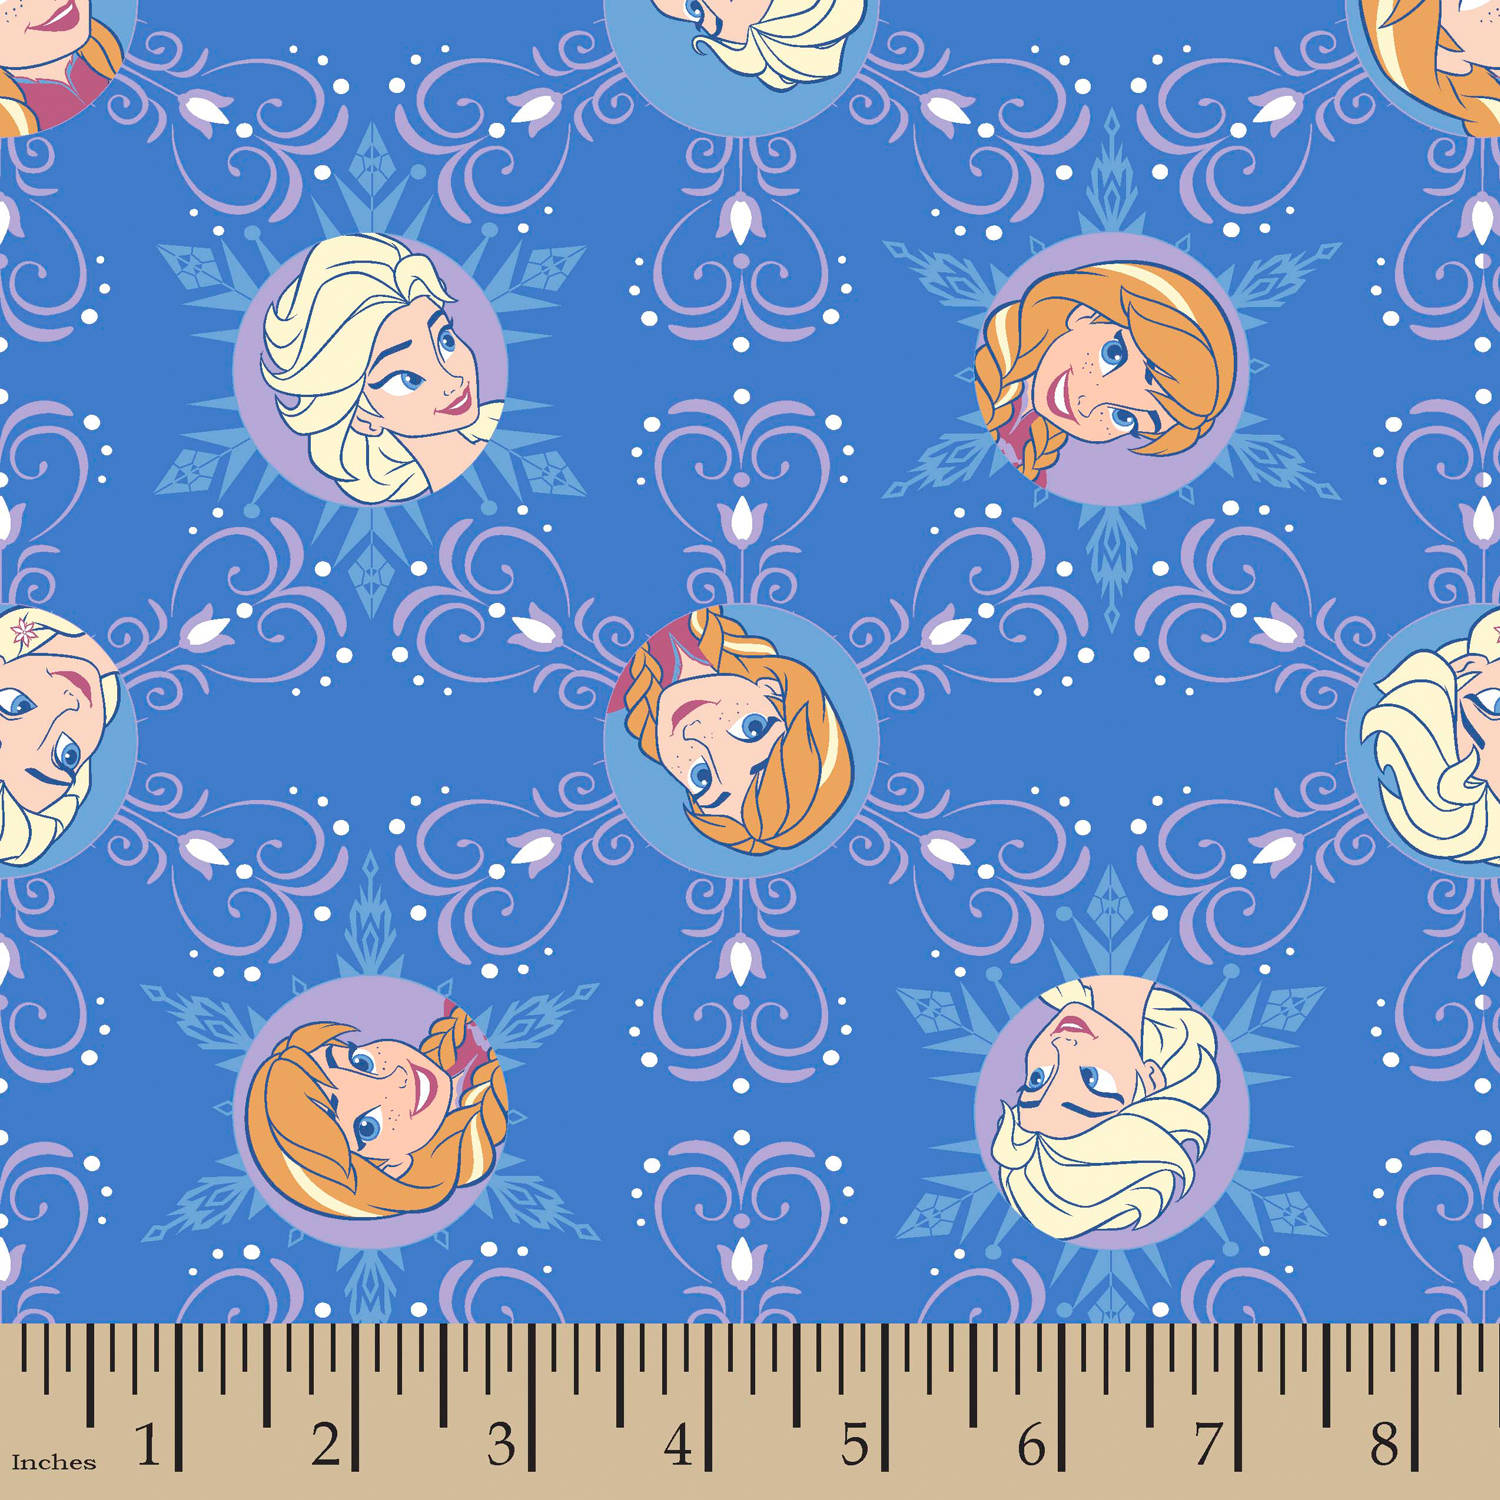 "Disney Frozen Winter Sisters Winter Magic Snowflake Badges, Corduroy, Blue, 43/44"" Width, Fabric by the Yard"